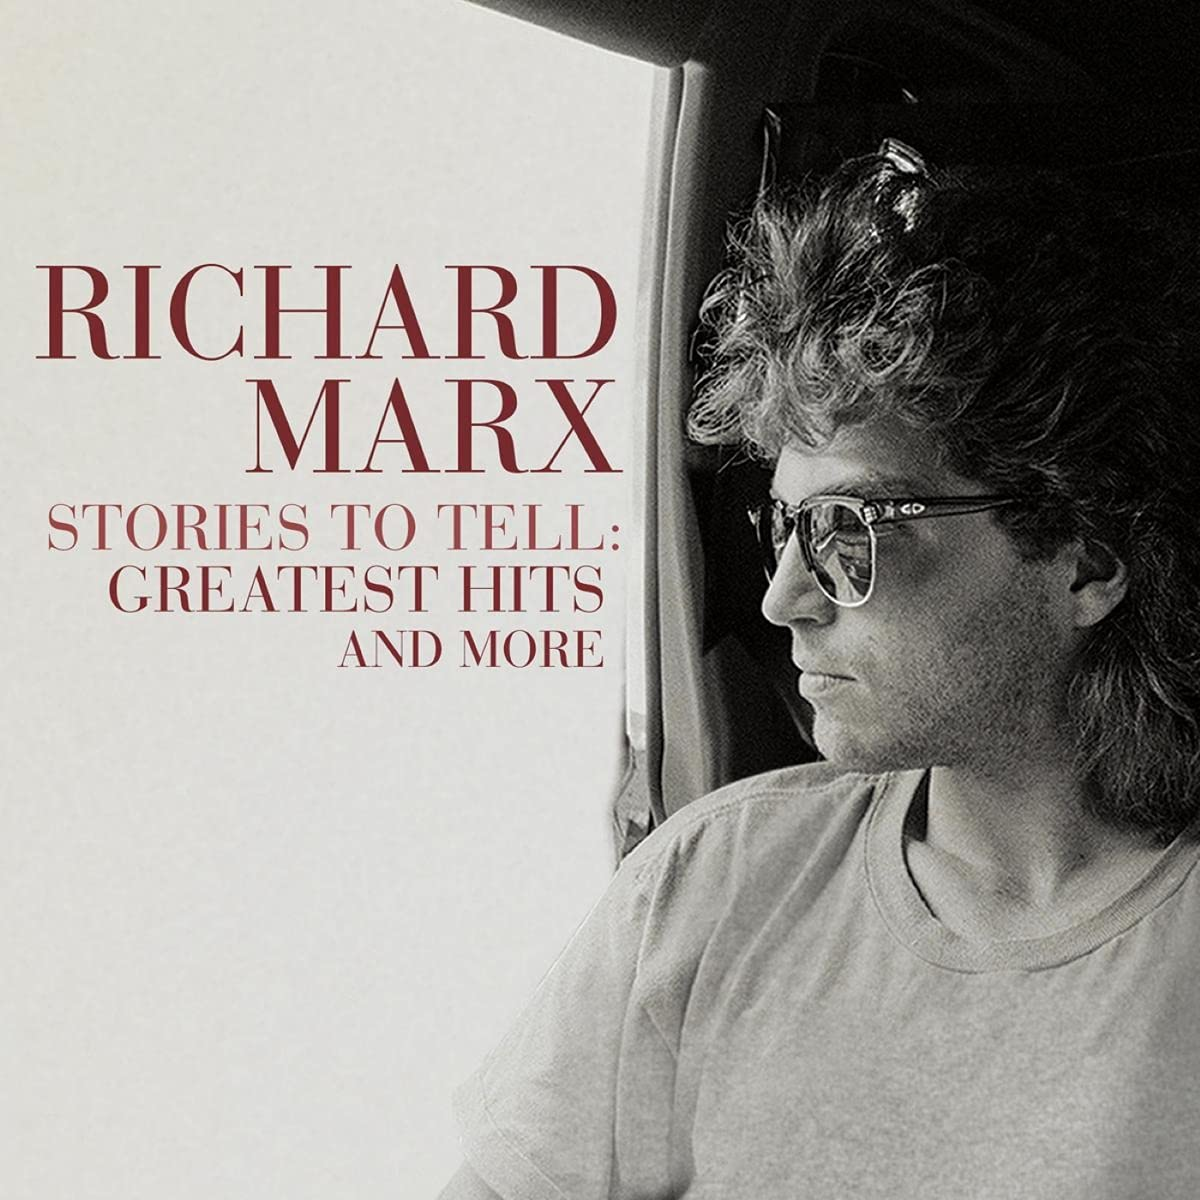 Stories To Tell - Greatest Hits And More